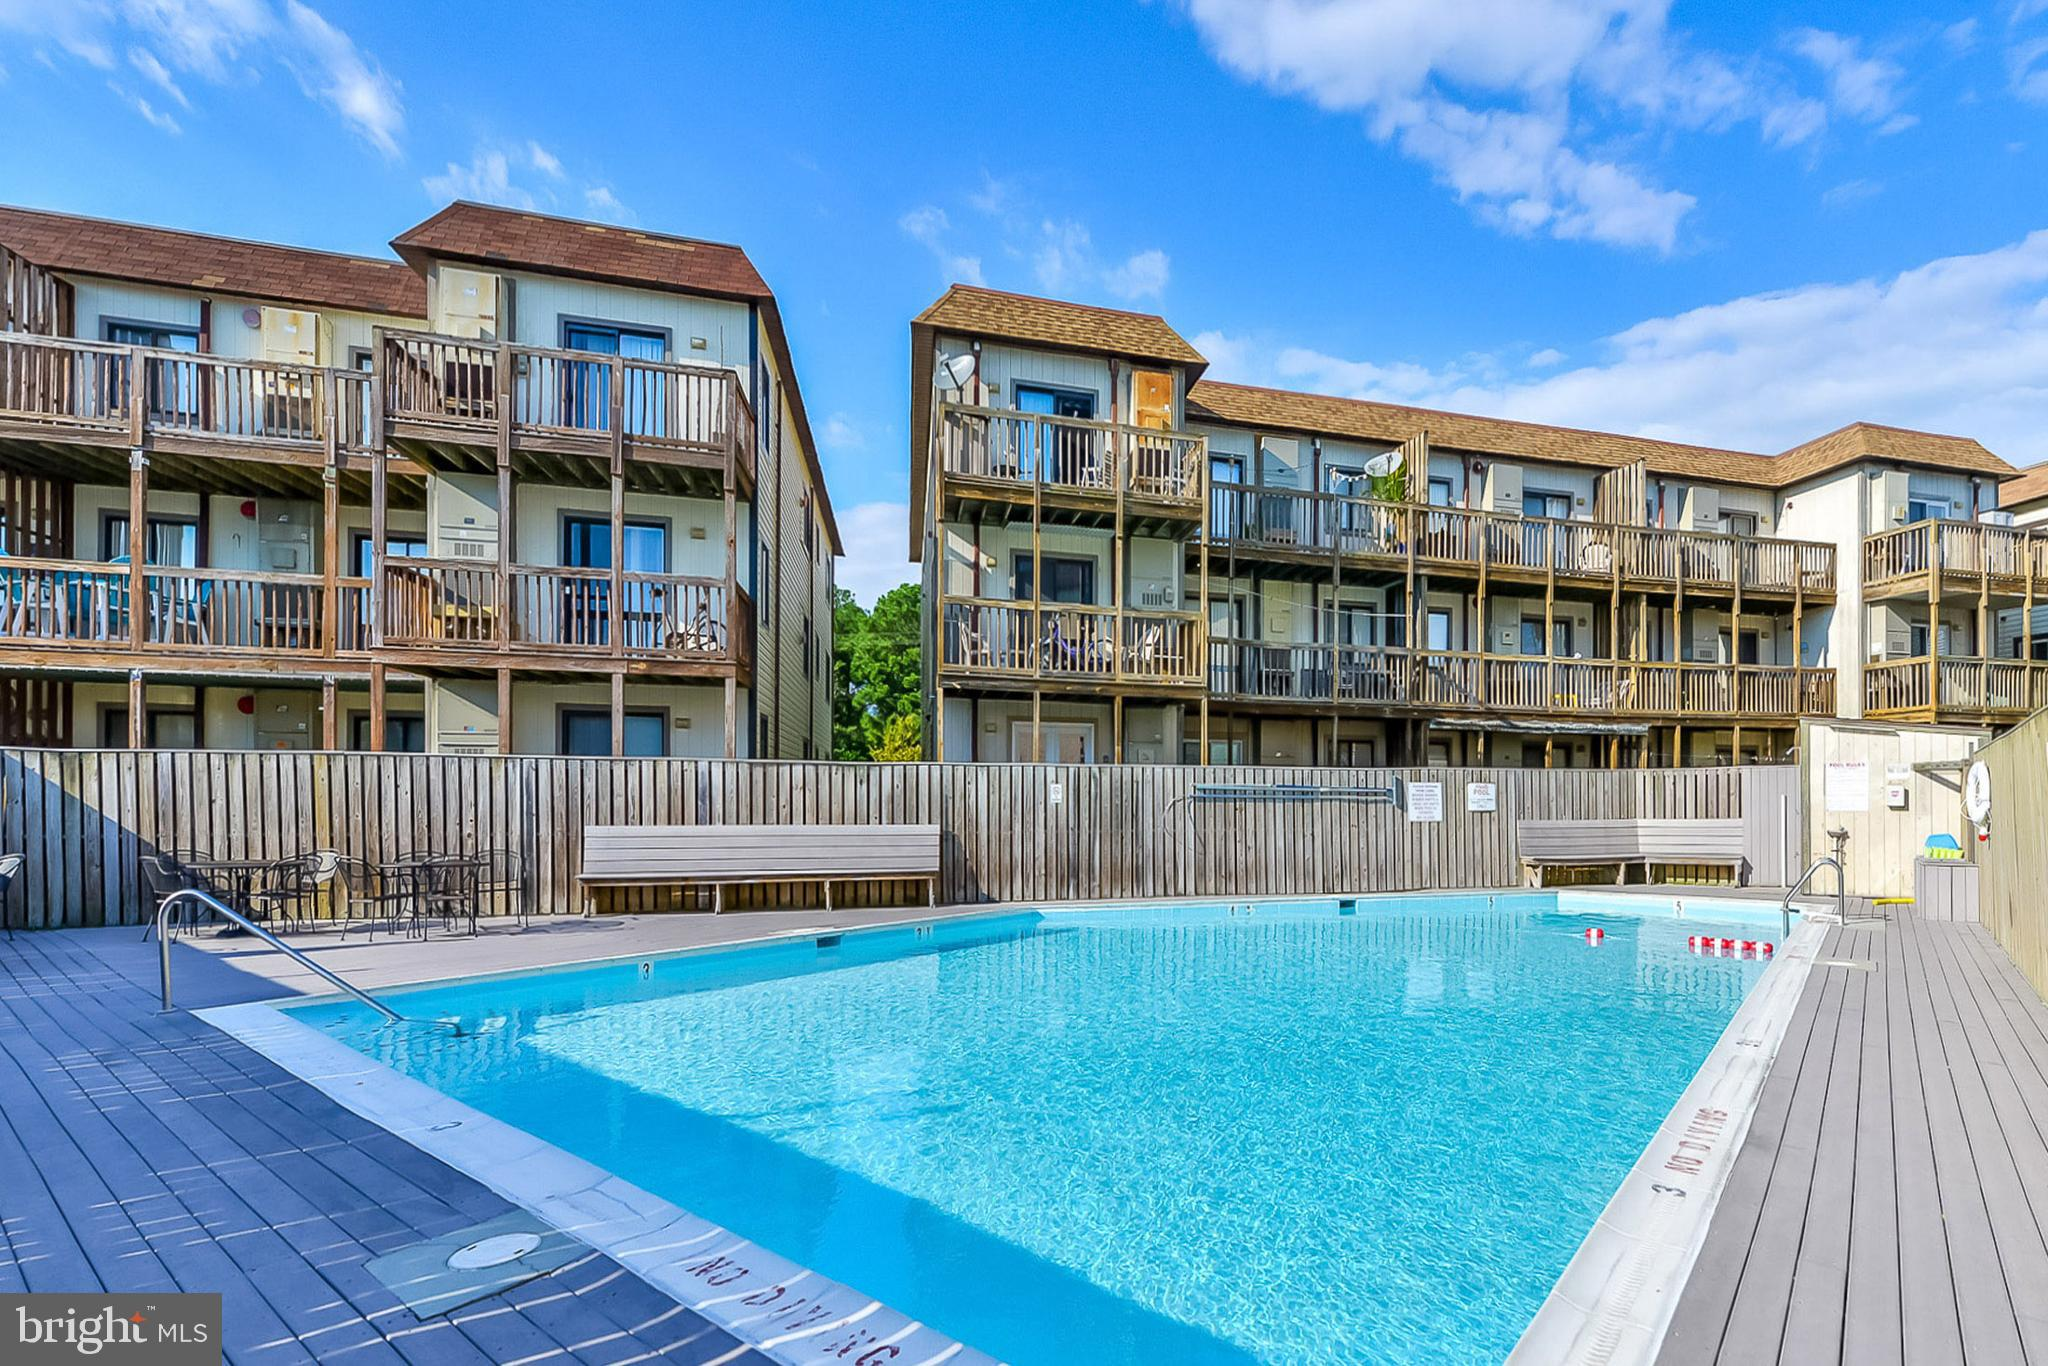 Welcome home to this 2 bedroom, 2 bath condo with a pool. When you step inside you'll walk through t